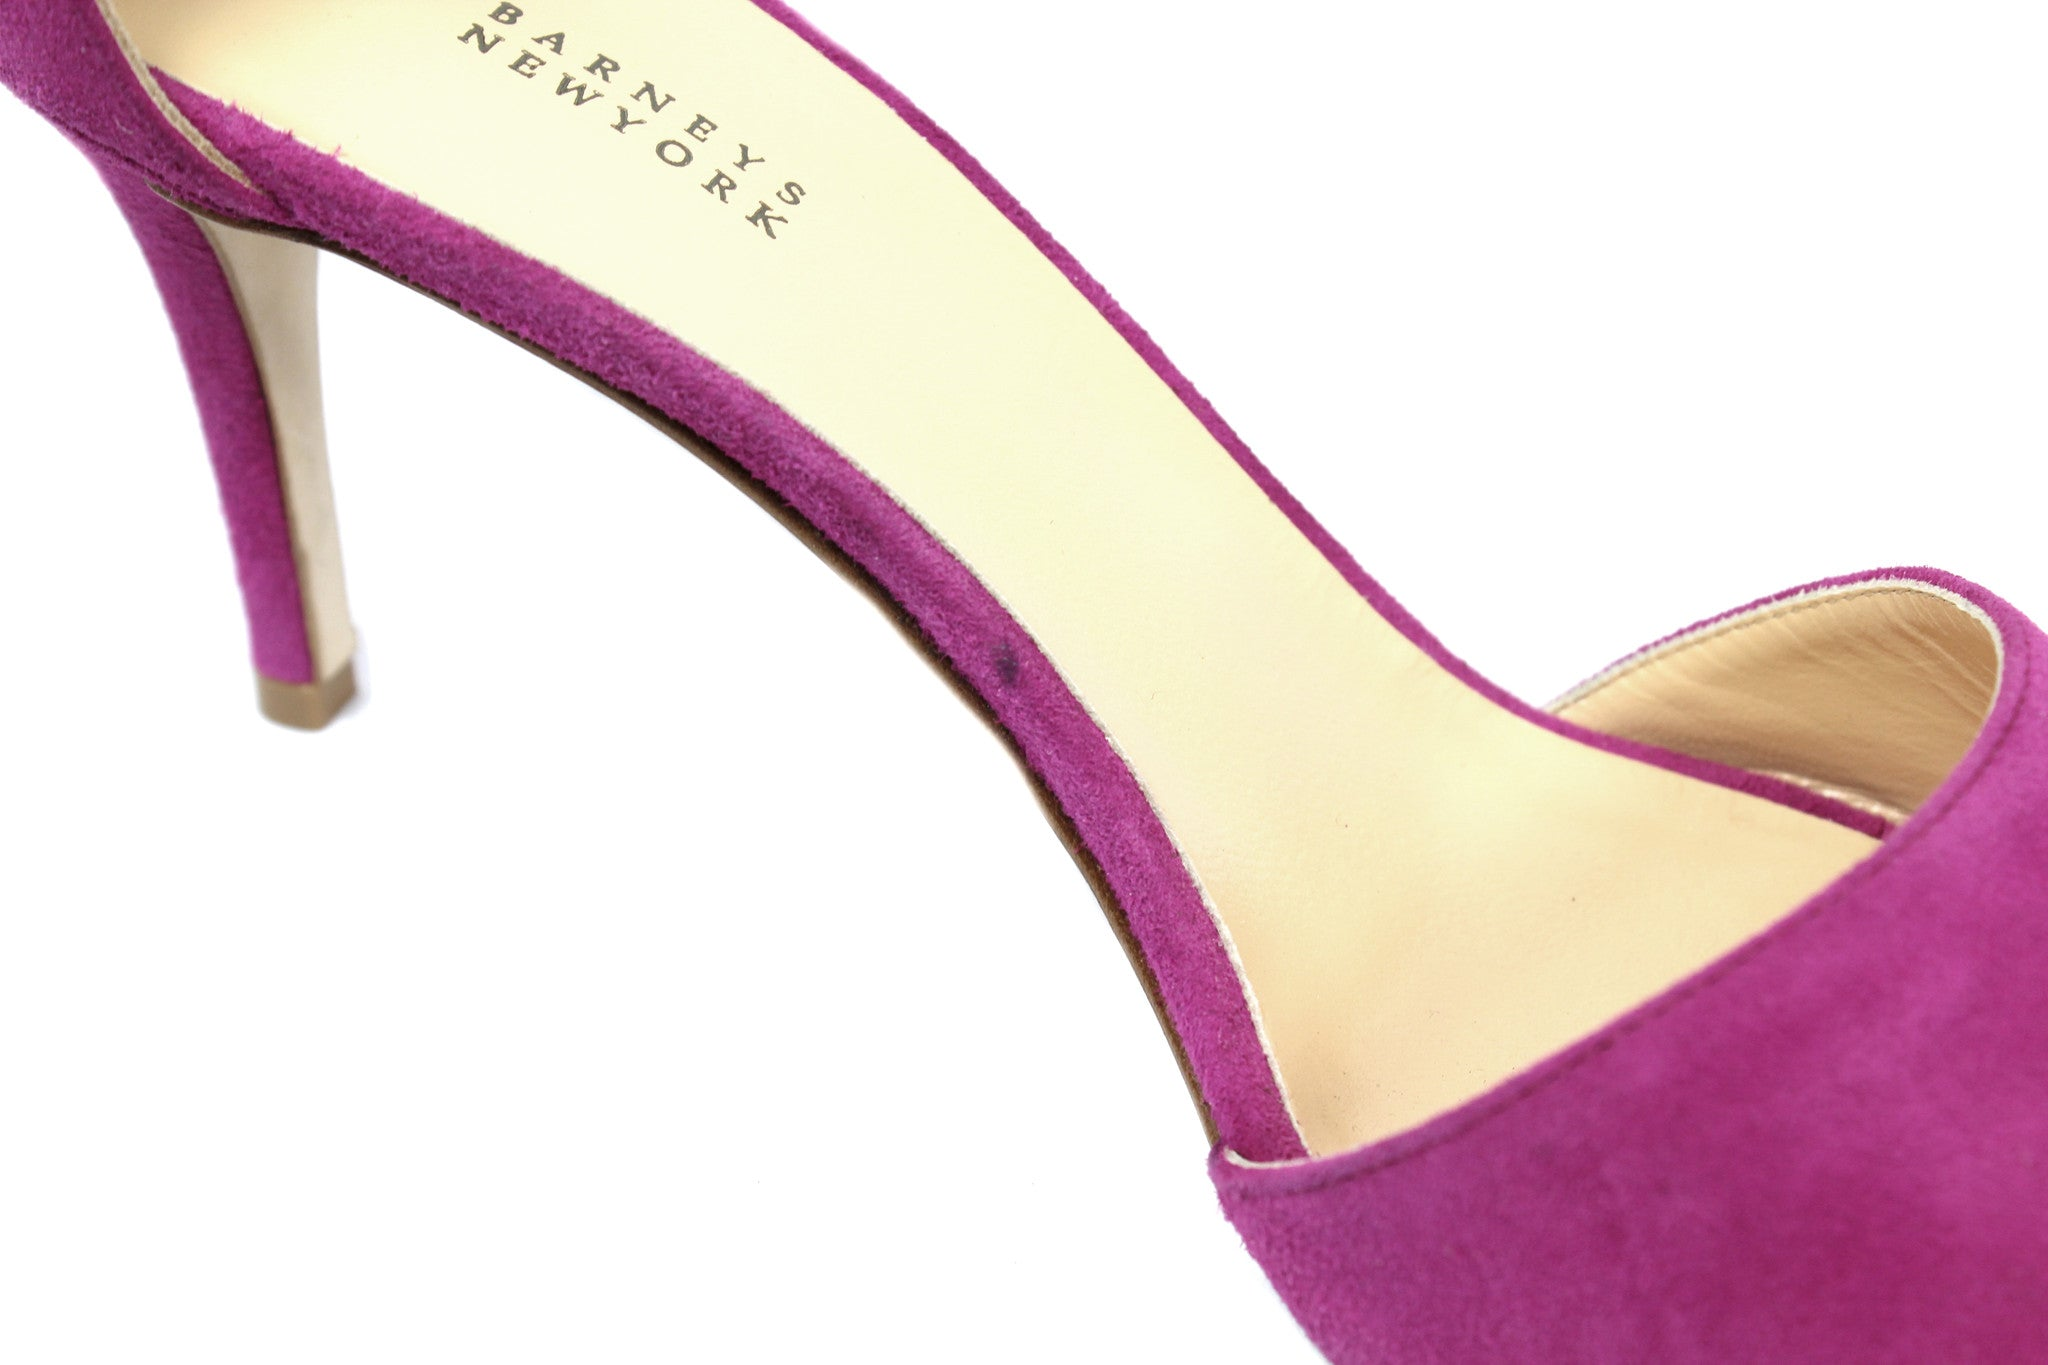 Barneys New York Fuchsia Suede Ankle Strap Sandals (Size 38.5) - Encore Consignment - 6